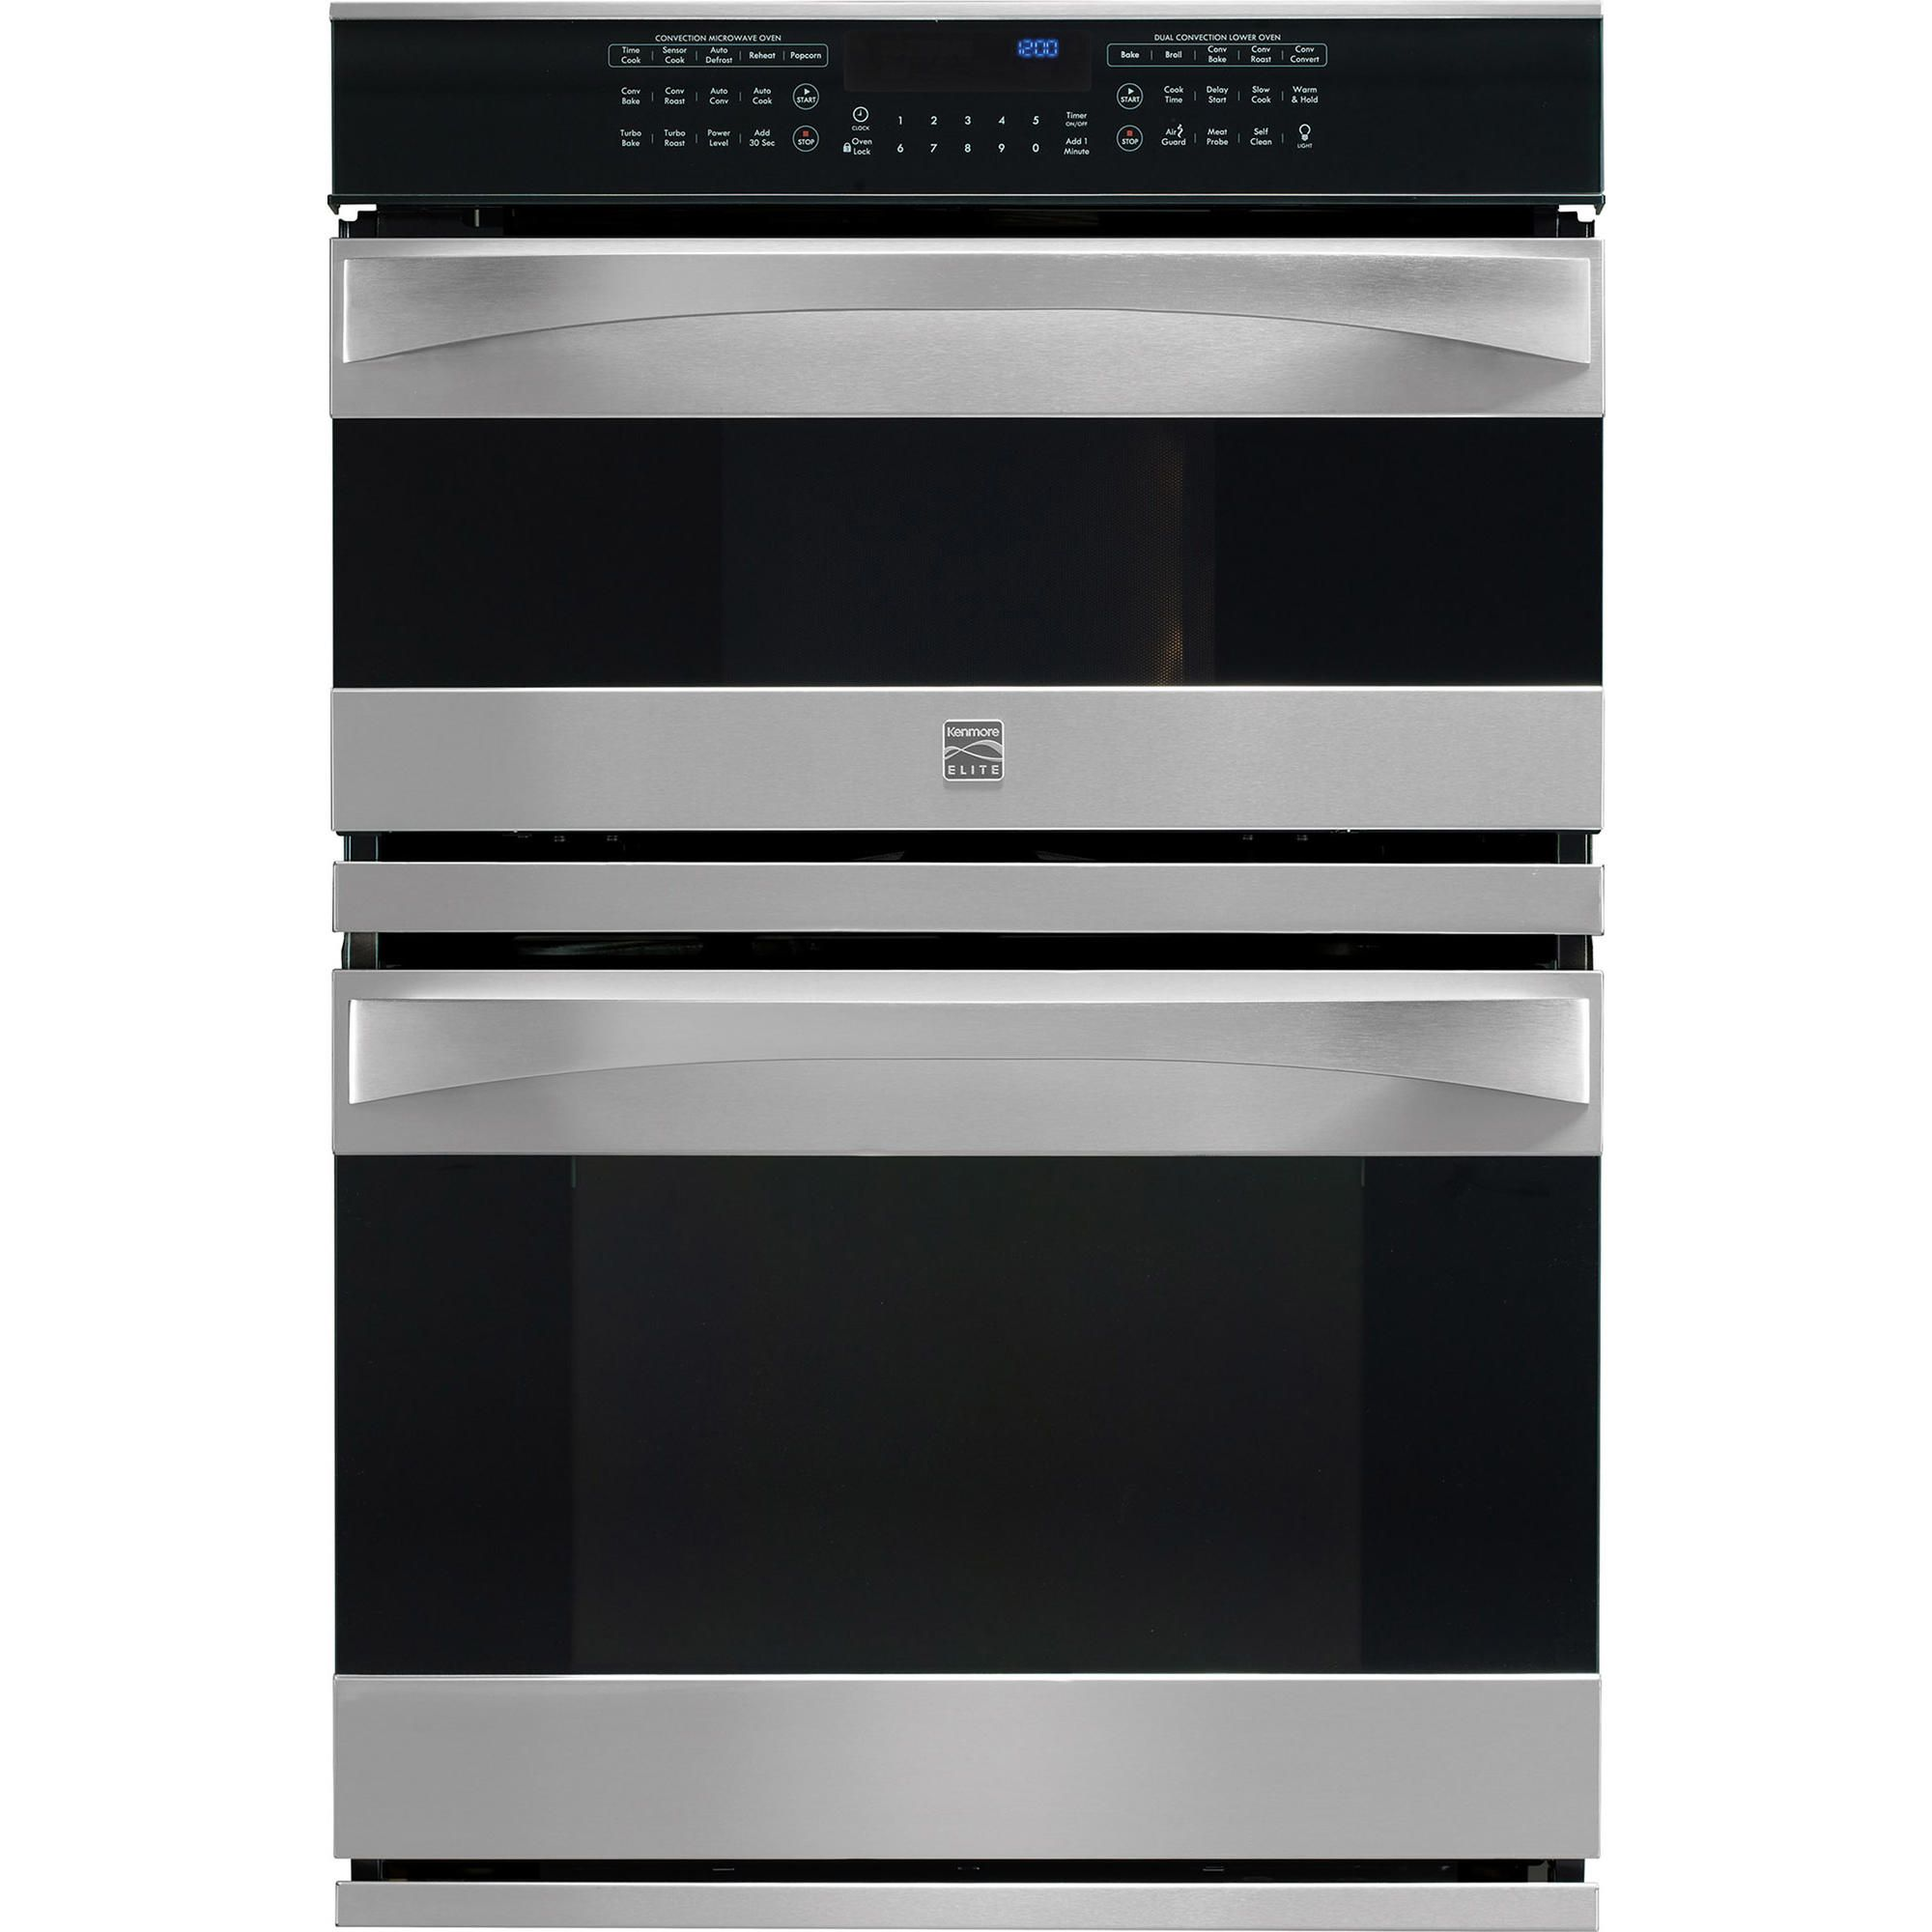 Kenmore Elite 49113 30 Electric Combination Oven Stainless Steel Wall Oven Combination Oven Stainless Steel Oven